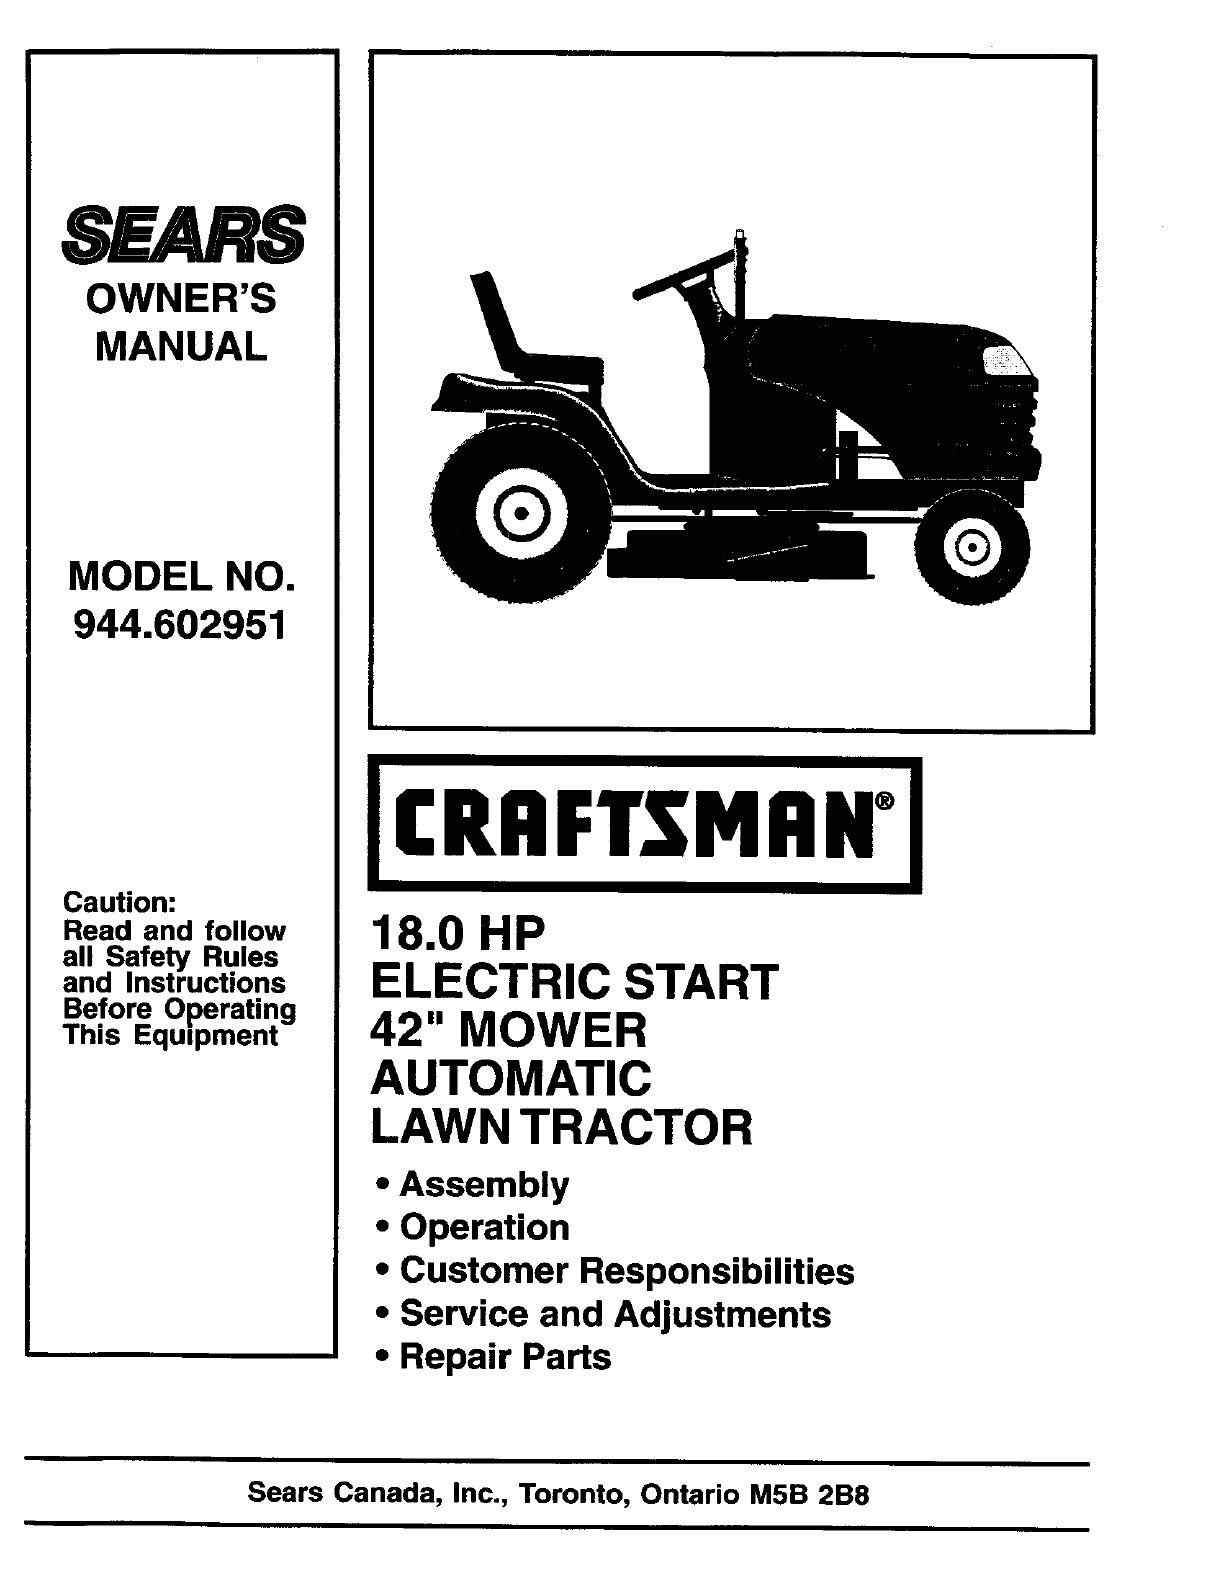 Craftsman Push Lawn Mower Parts : Craftsman riding lawn mower parts diagram automotive